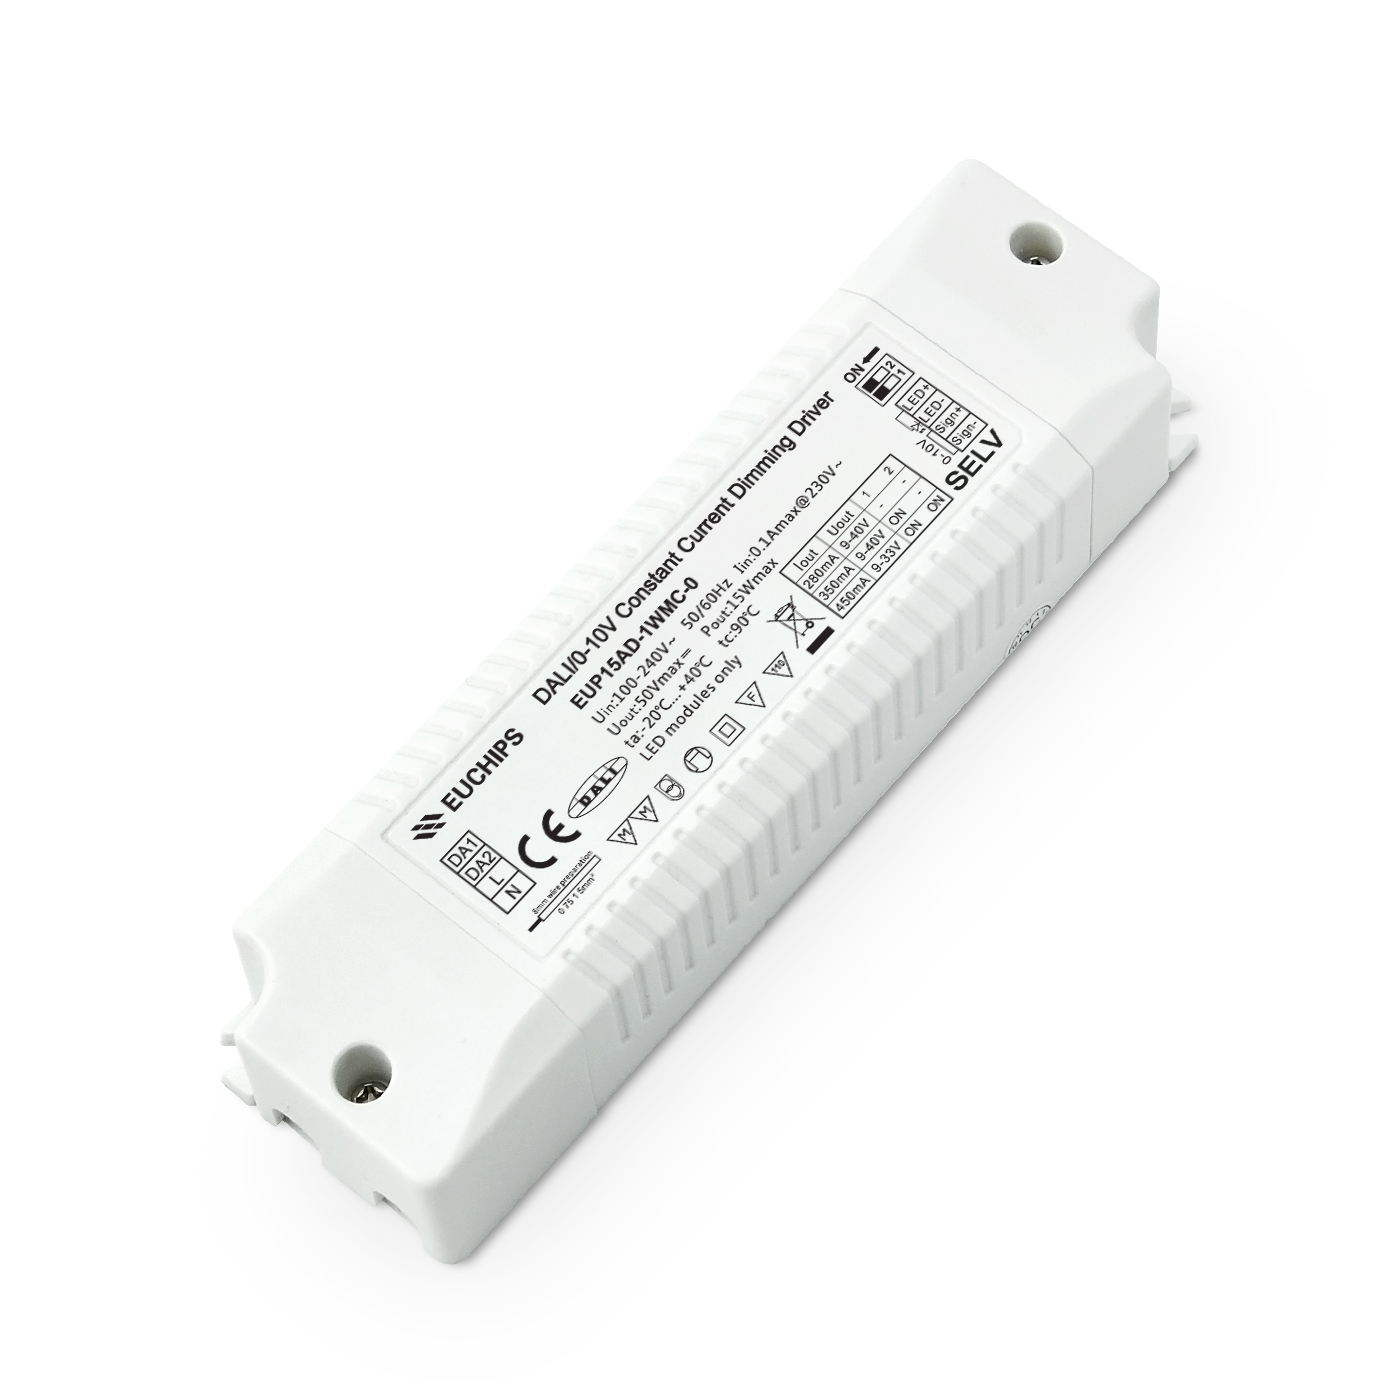 New Fashion Design for 0-10v Dimmer 230v -